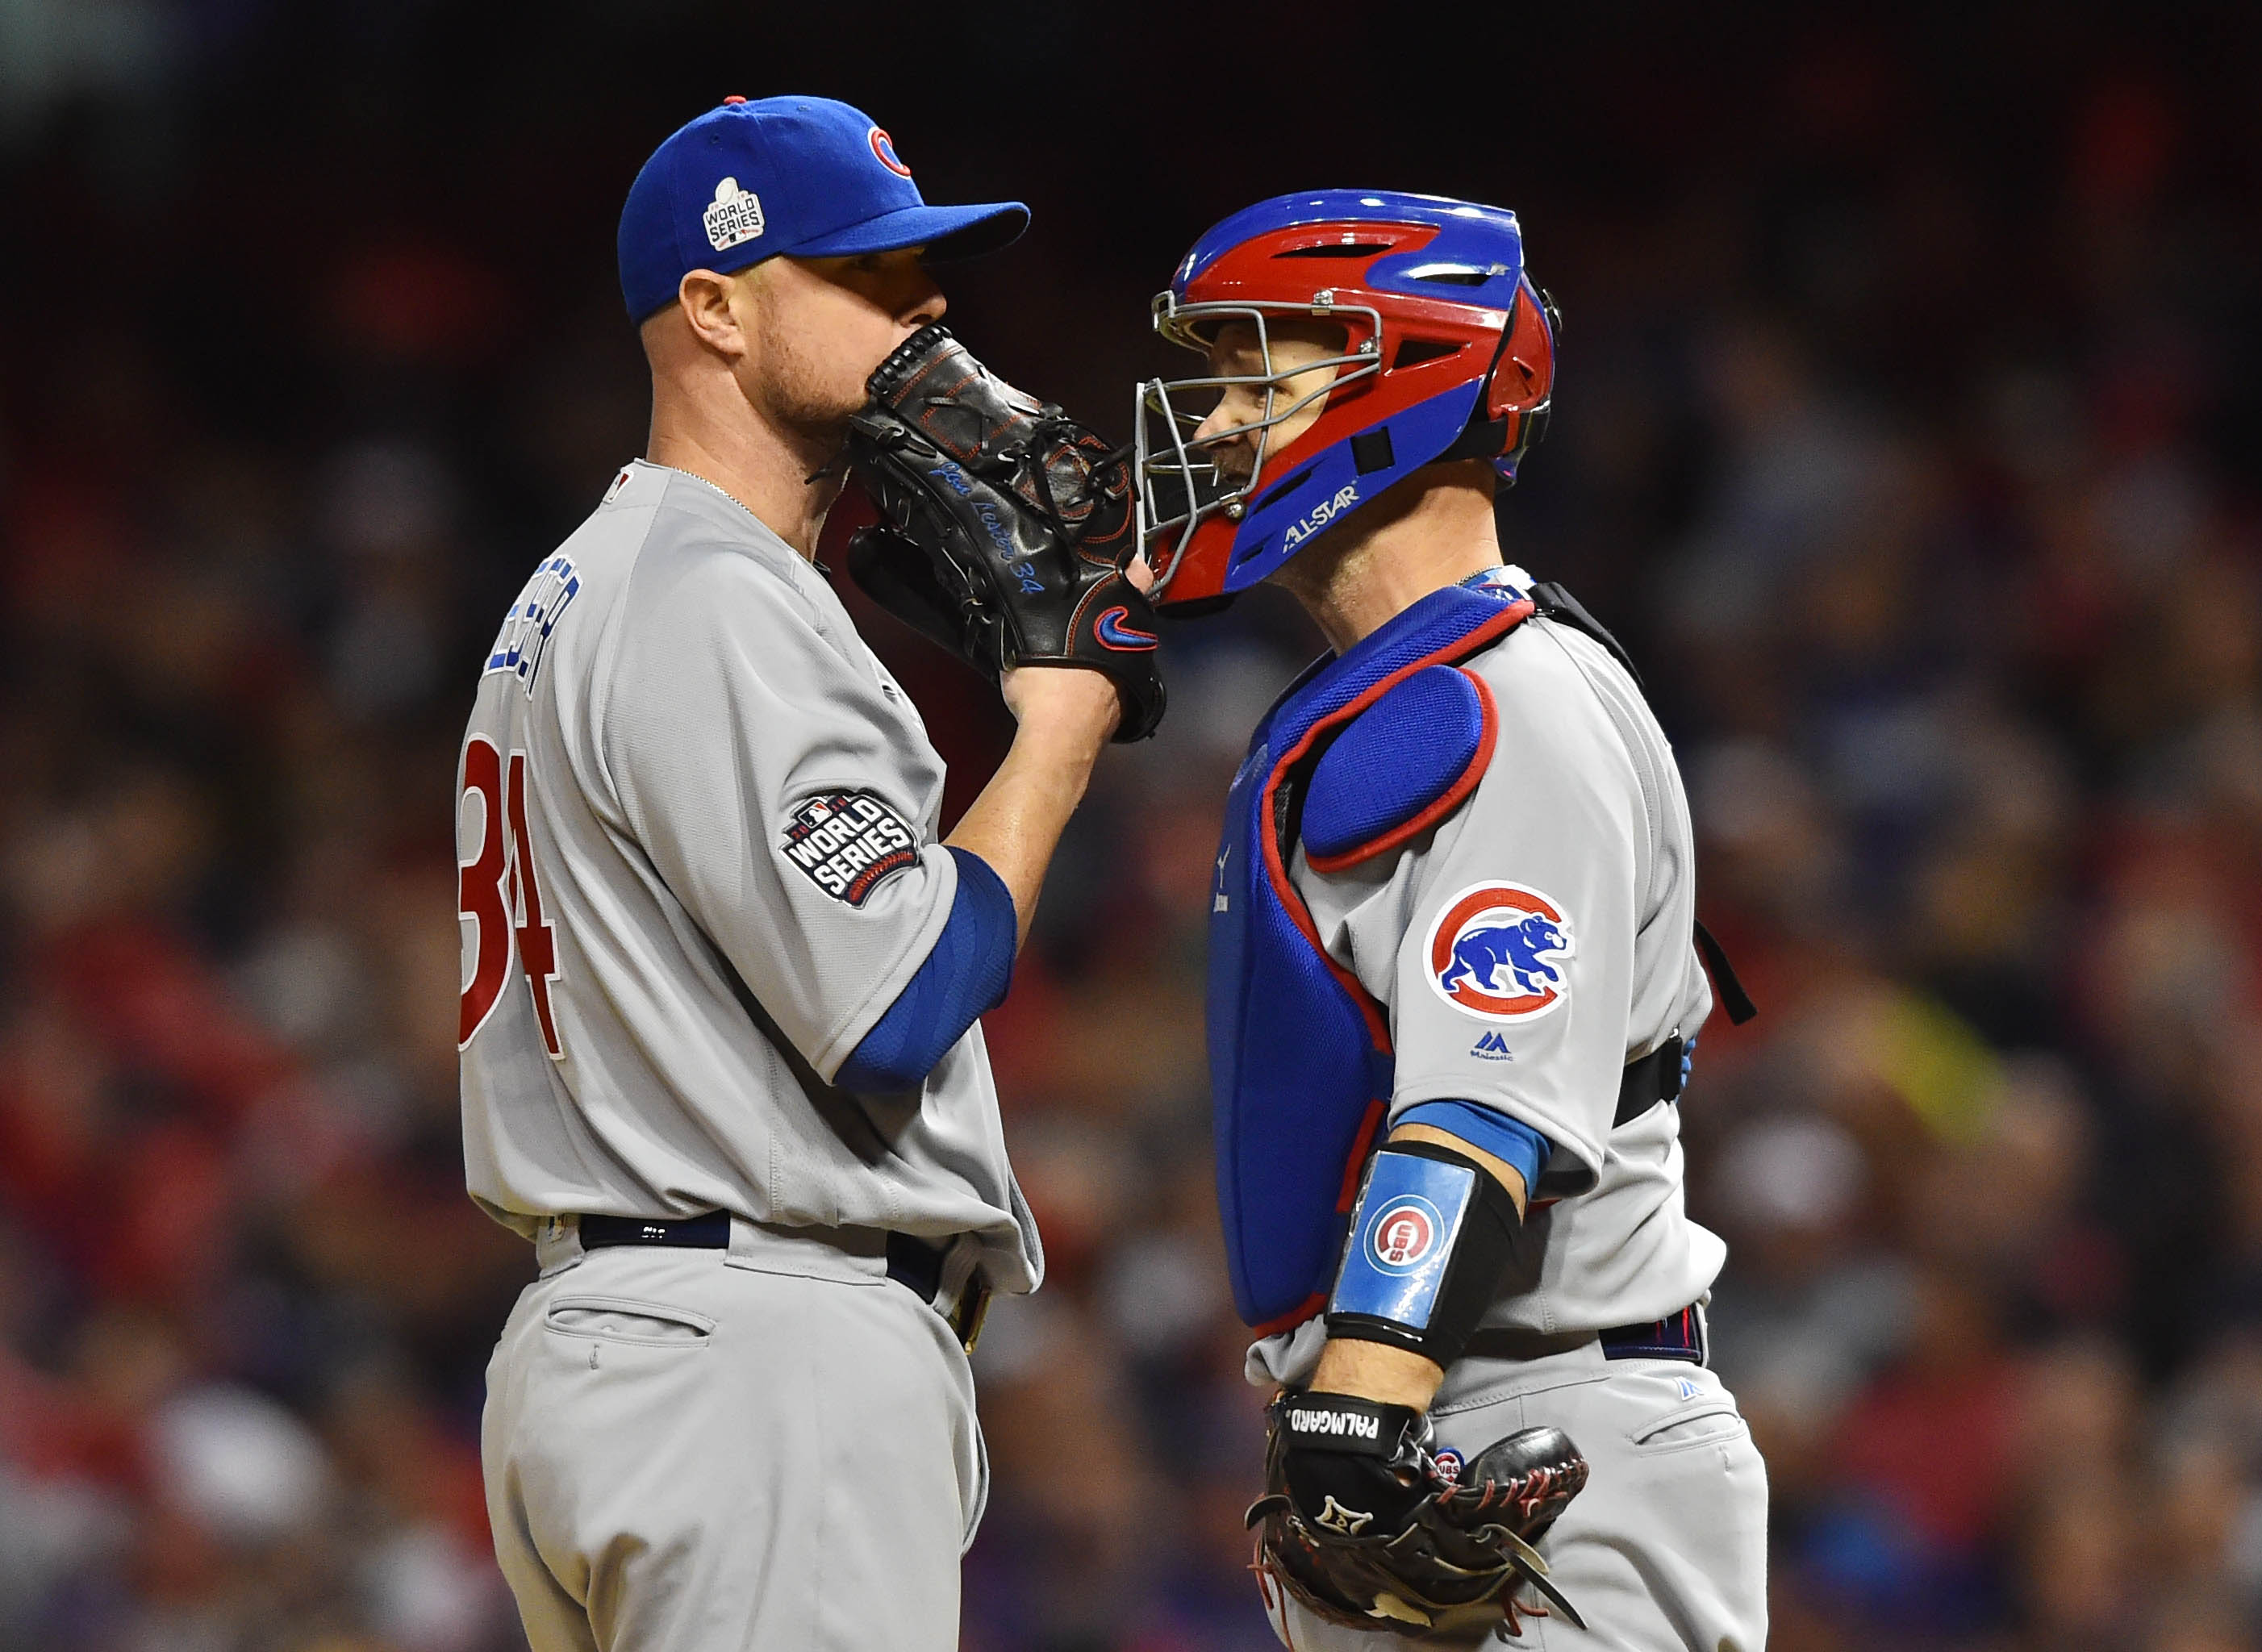 9632623-mlb-world-series-chicago-cubs-at-cleveland-indians